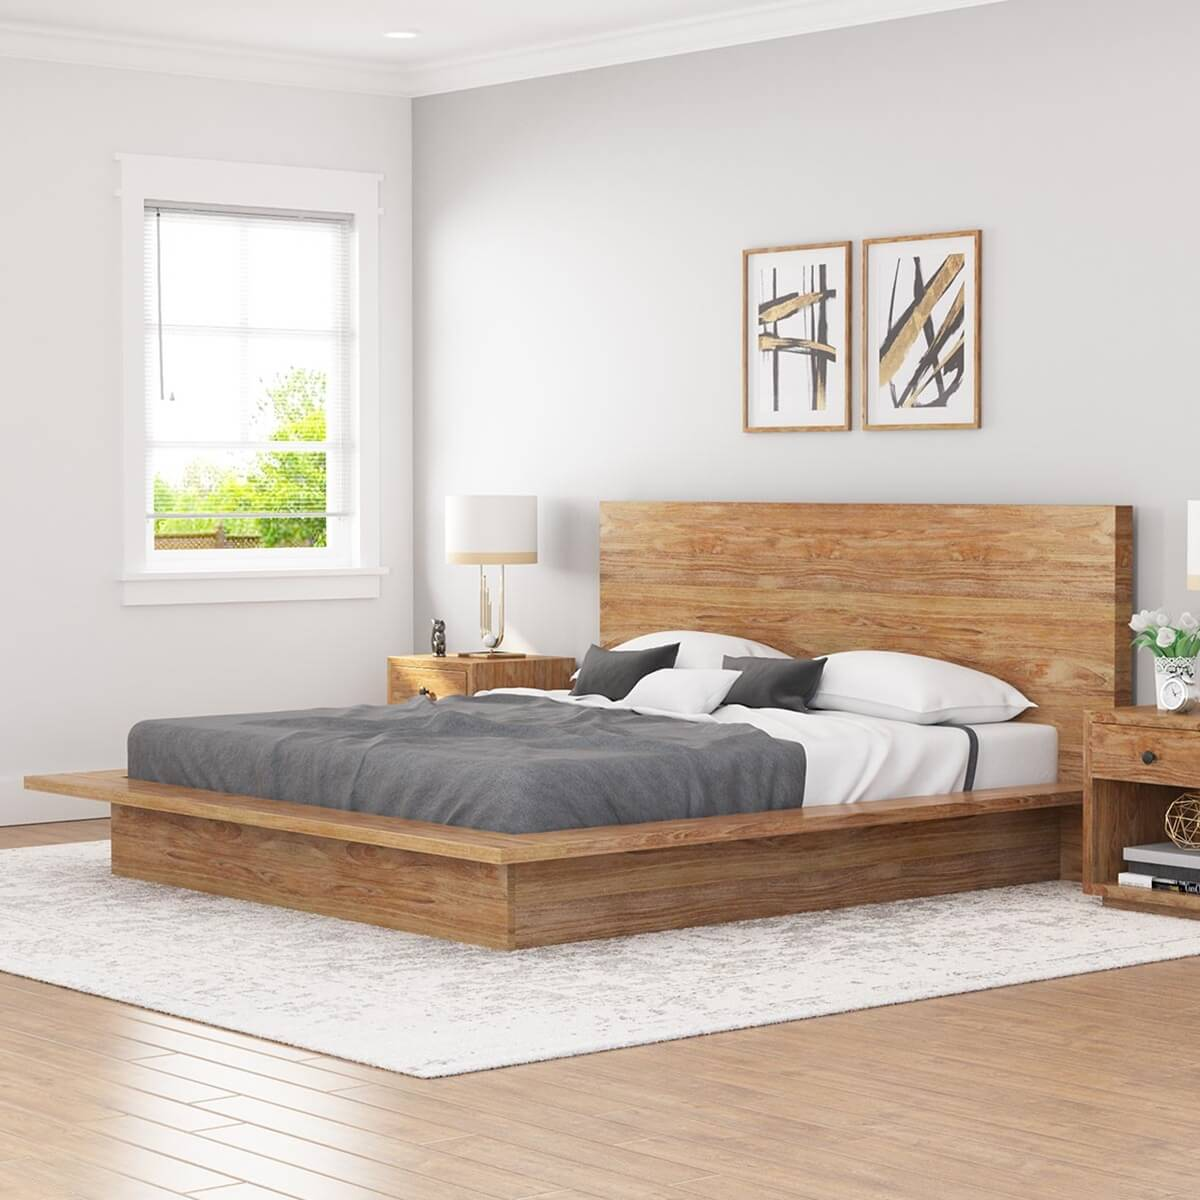 britain rustic teak wood platform bed frame. rustic teak wood platform bed frame